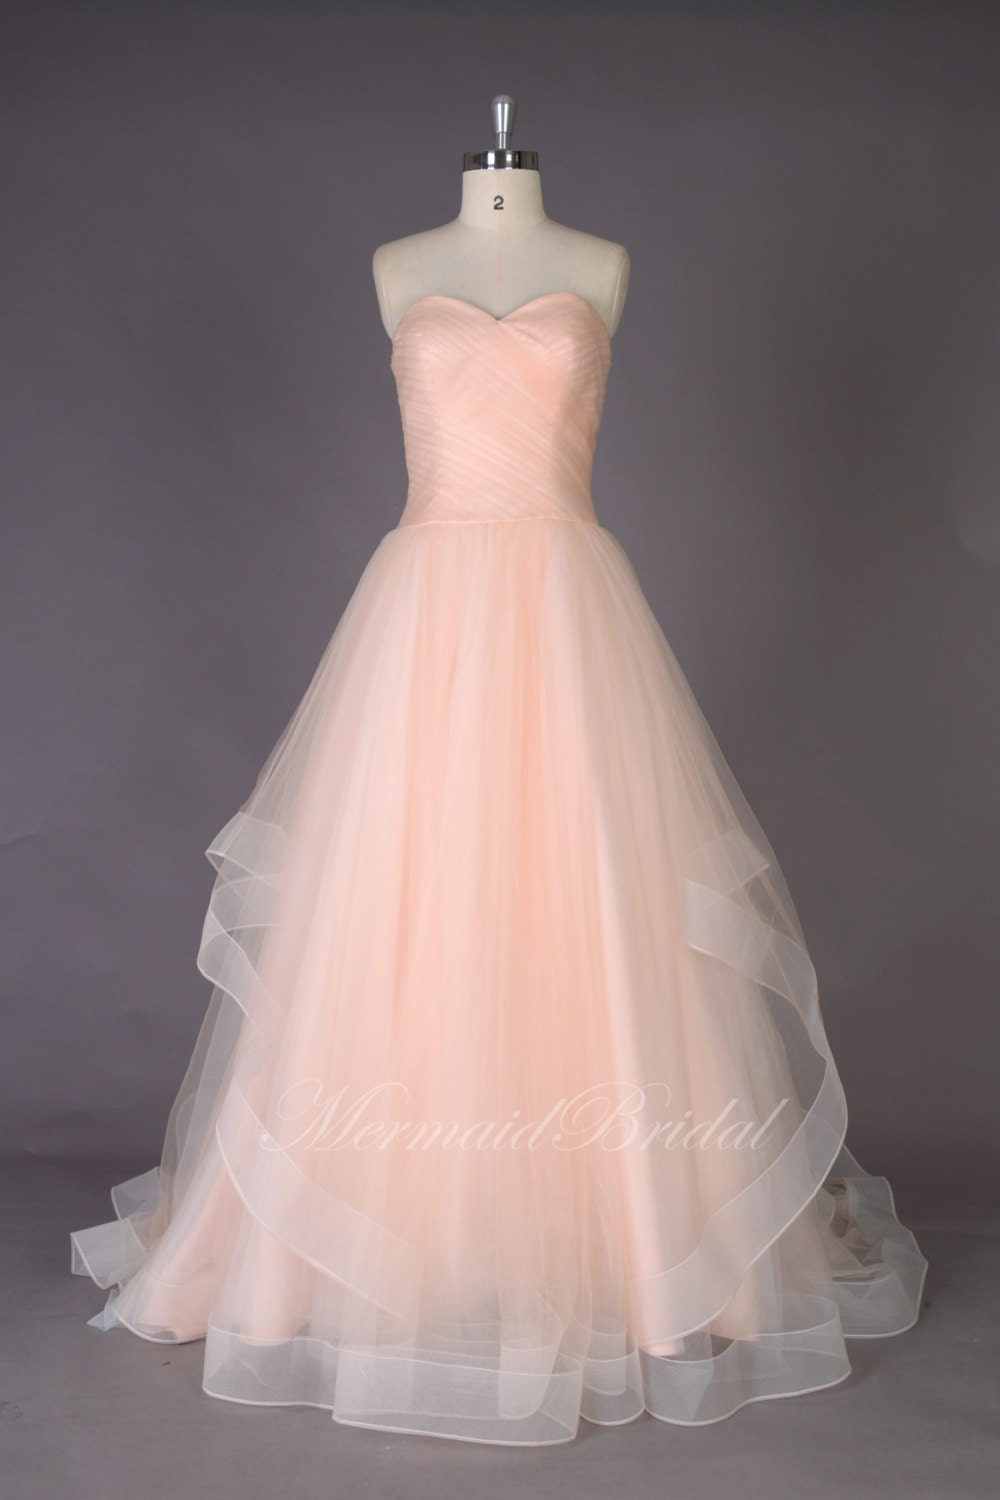 Post your ceremony dress and reception dresses for Post wedding party dress